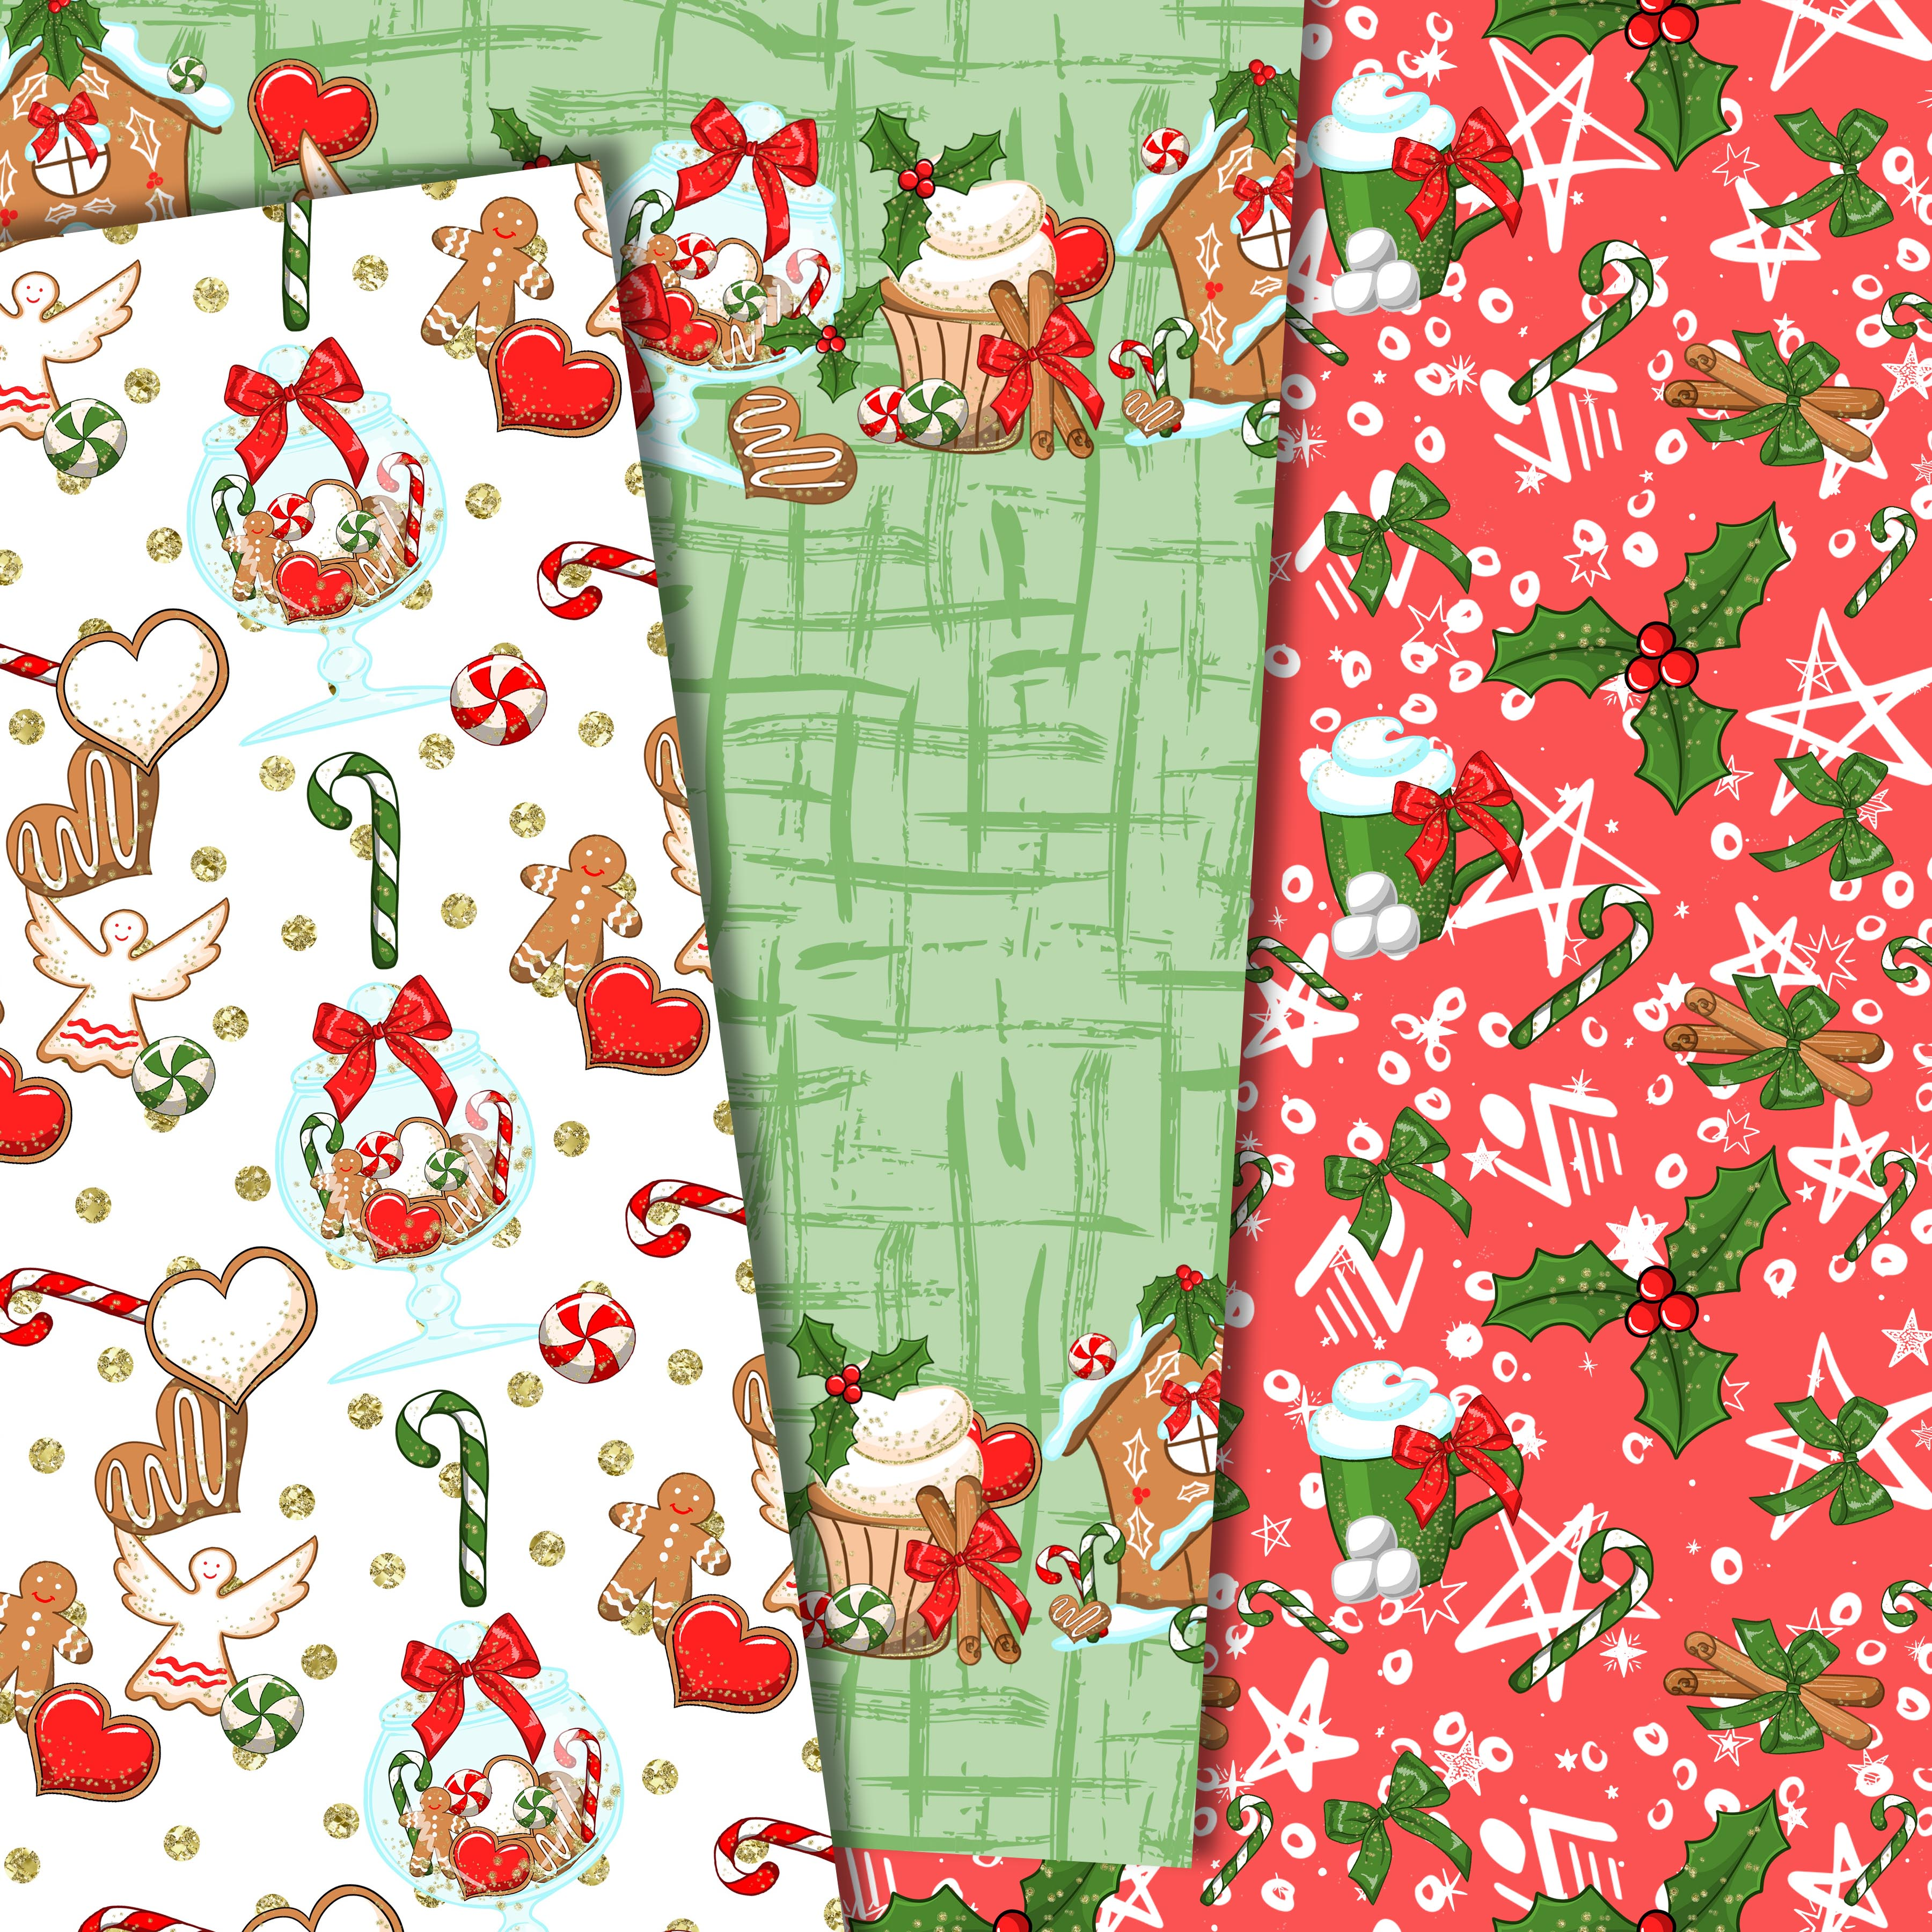 Christmas sweets patterns example image 5